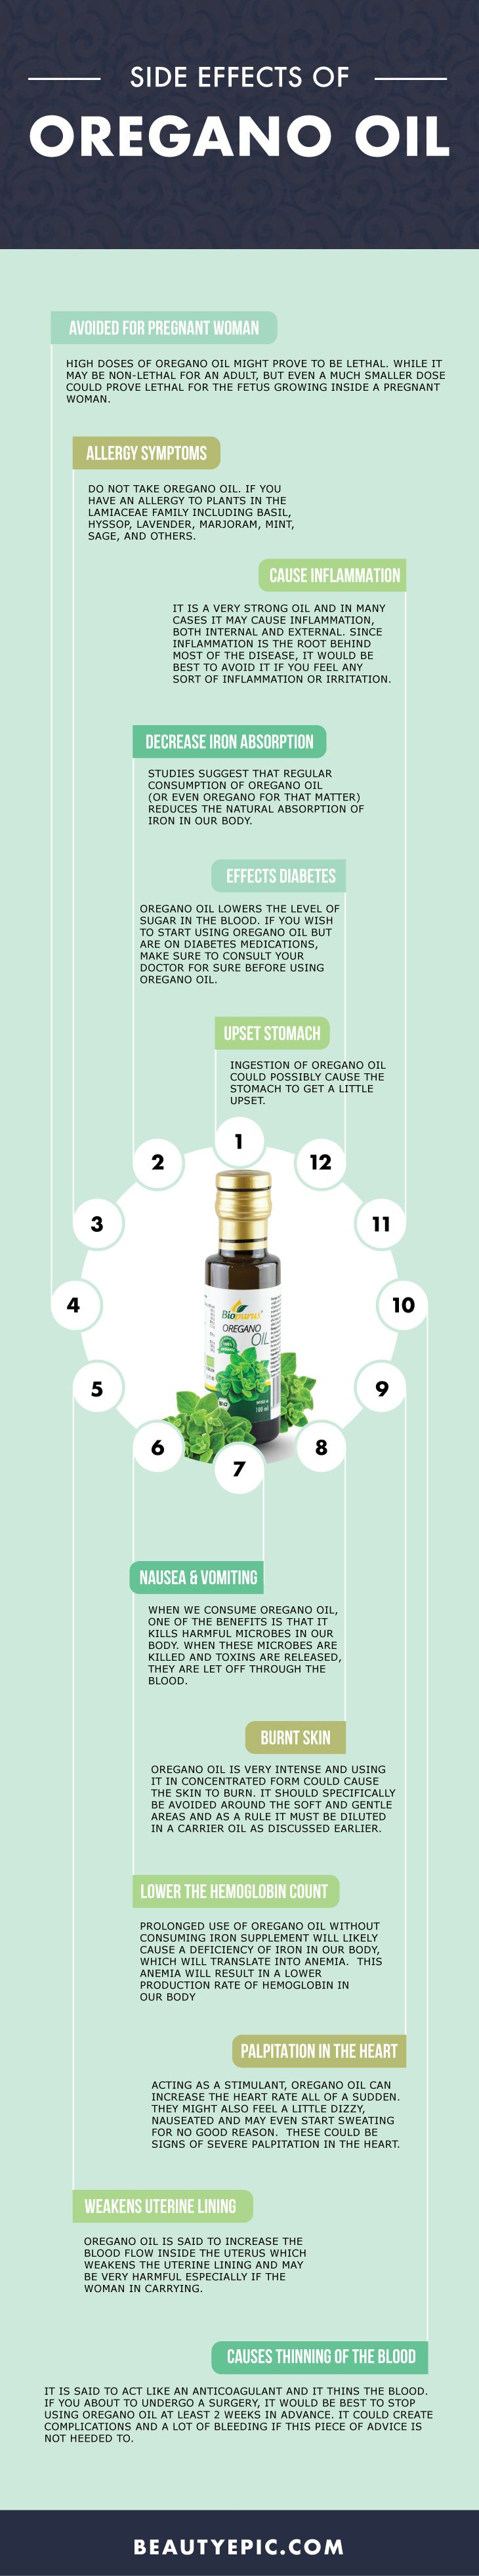 14 Must Know Serious Side Effects Of Oregano Oil